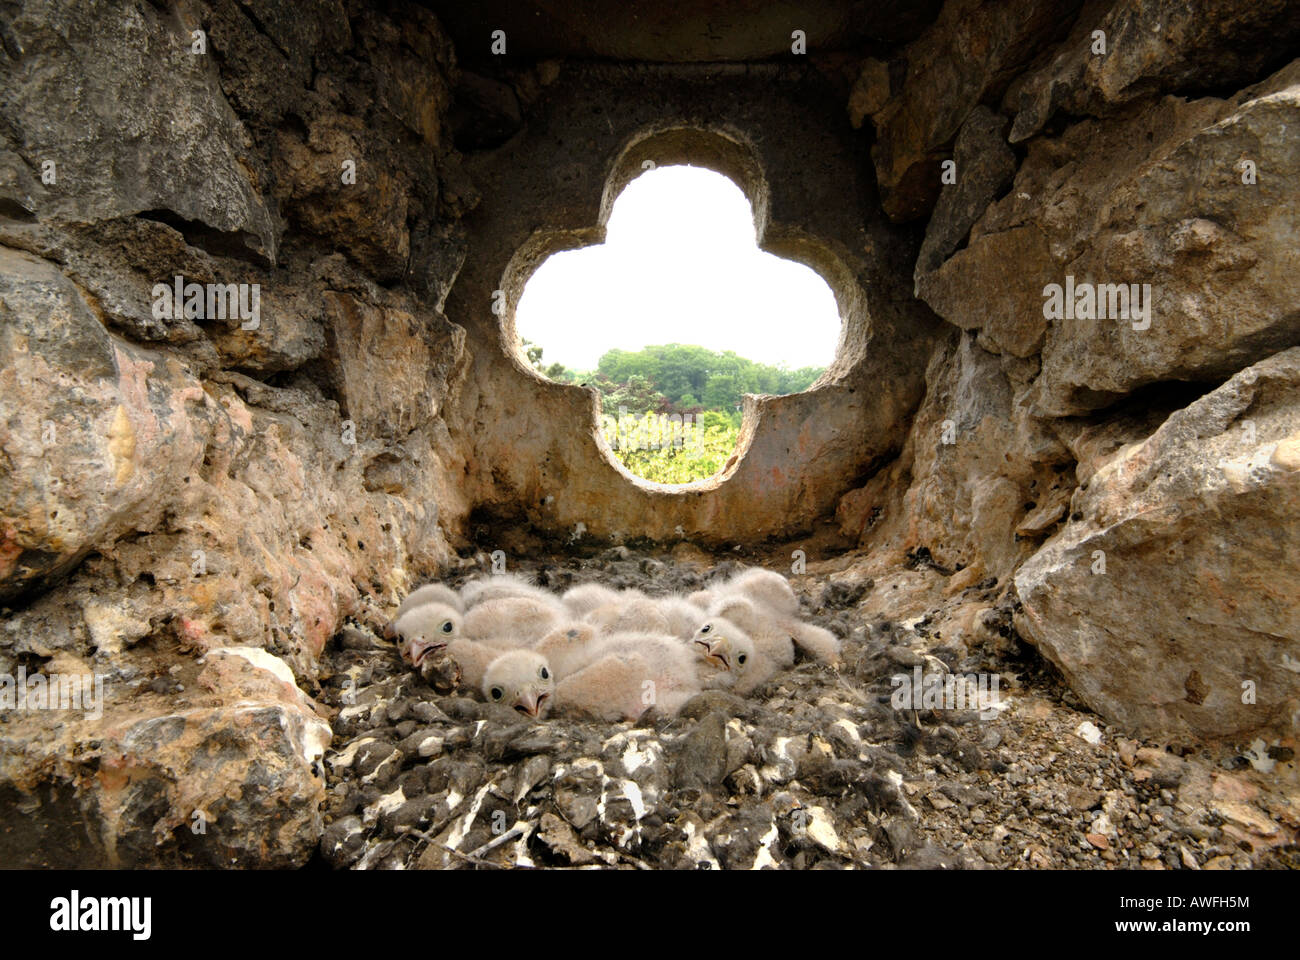 Nest full of young Common Kestrels (Falco tinnunculus) - Stock Image